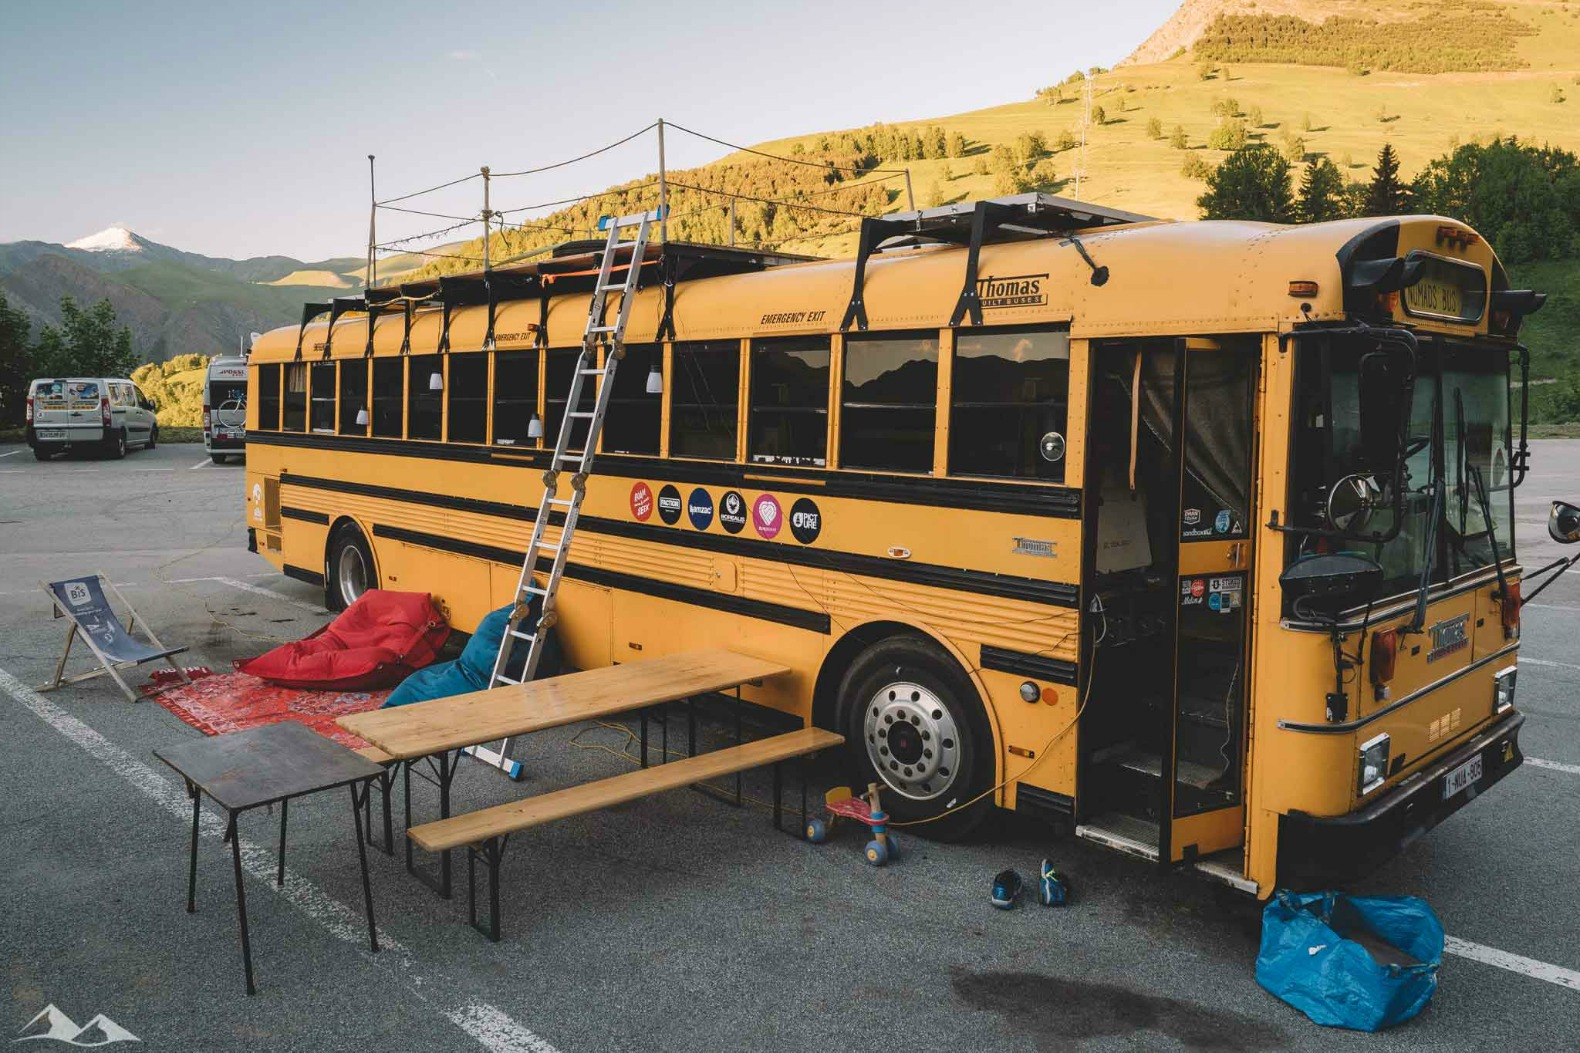 Traveling Family Renovates Old School Bus As Both Solar